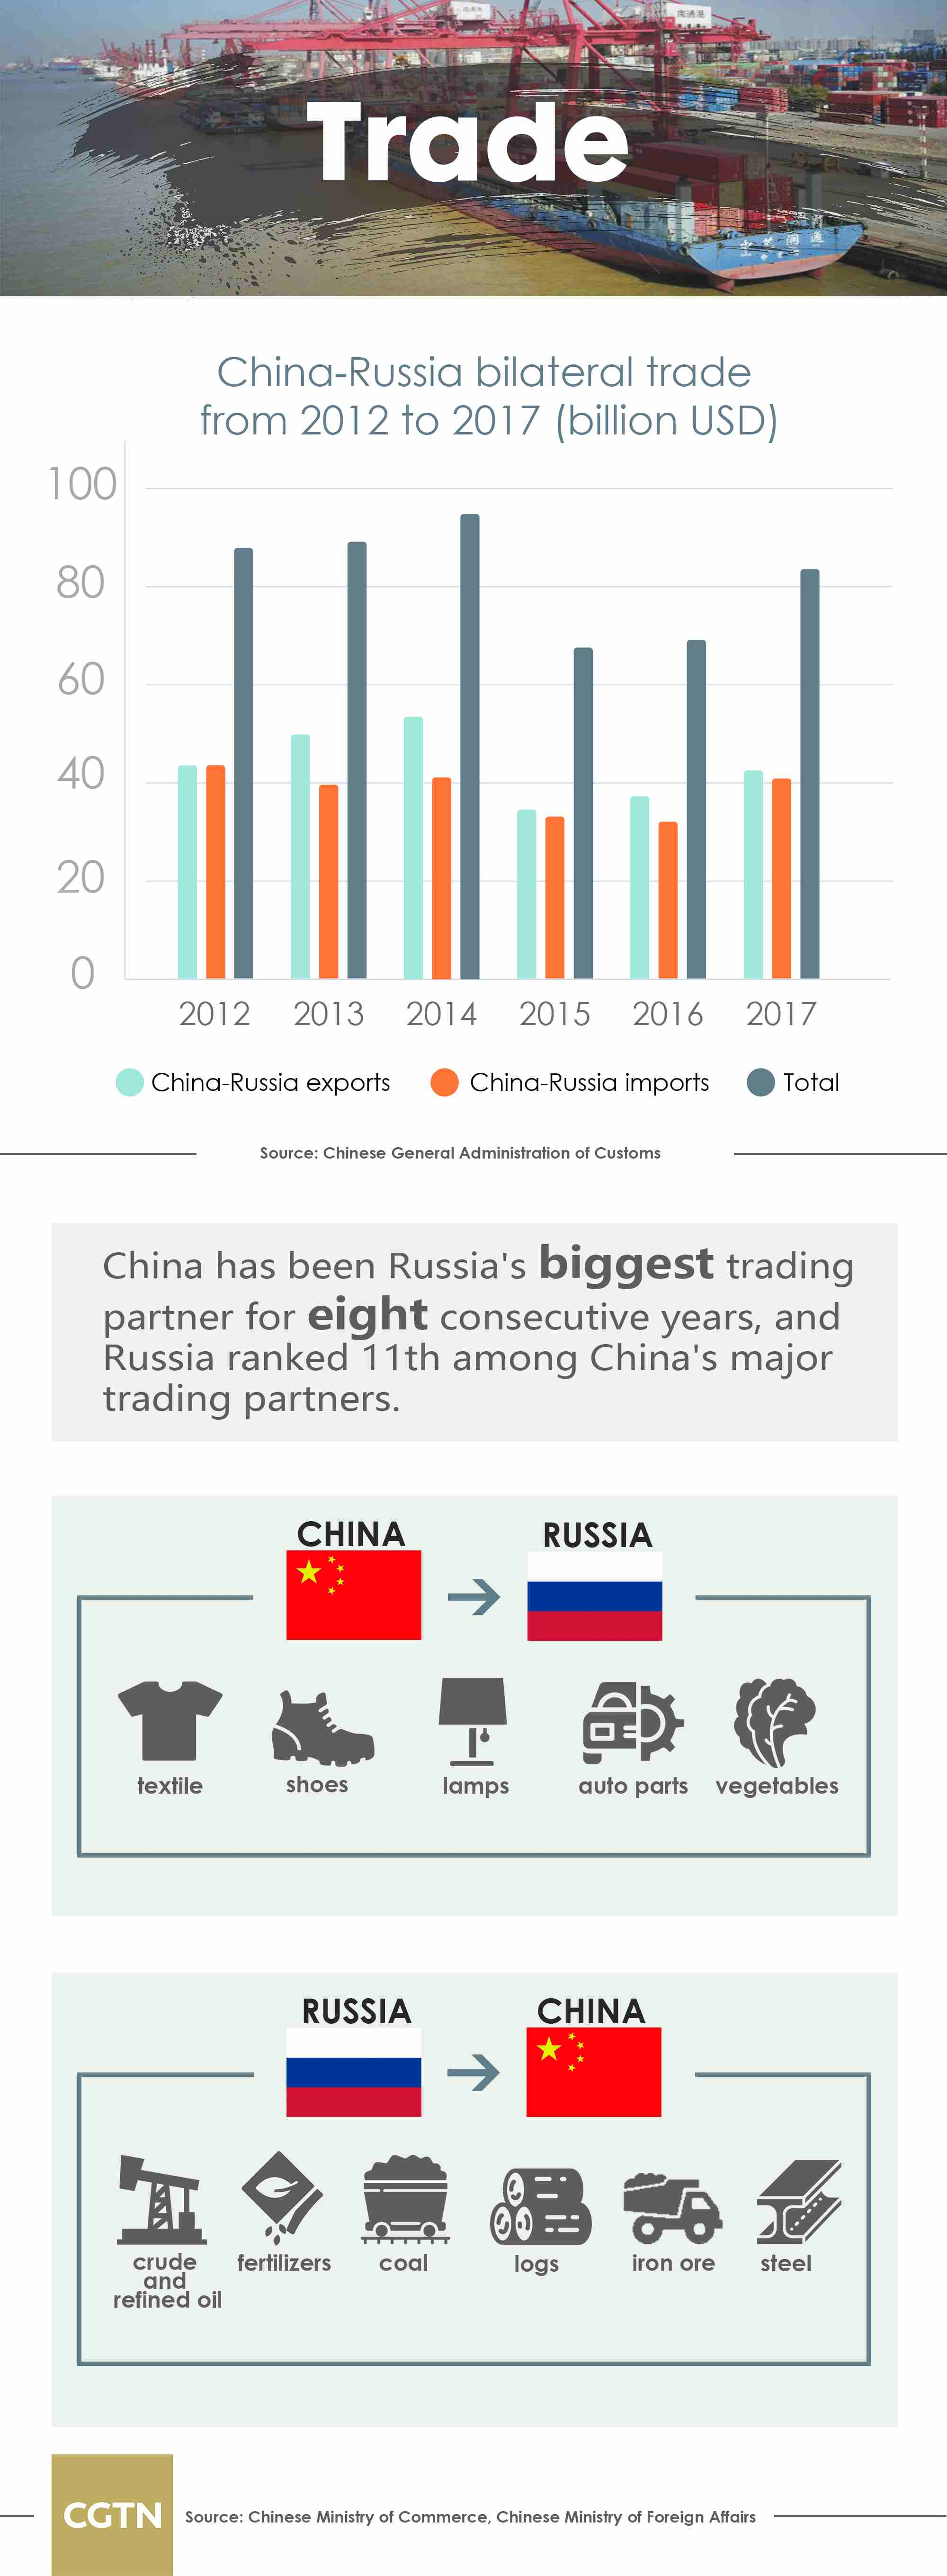 China-Russia economic cooperation on fast track - CGTN